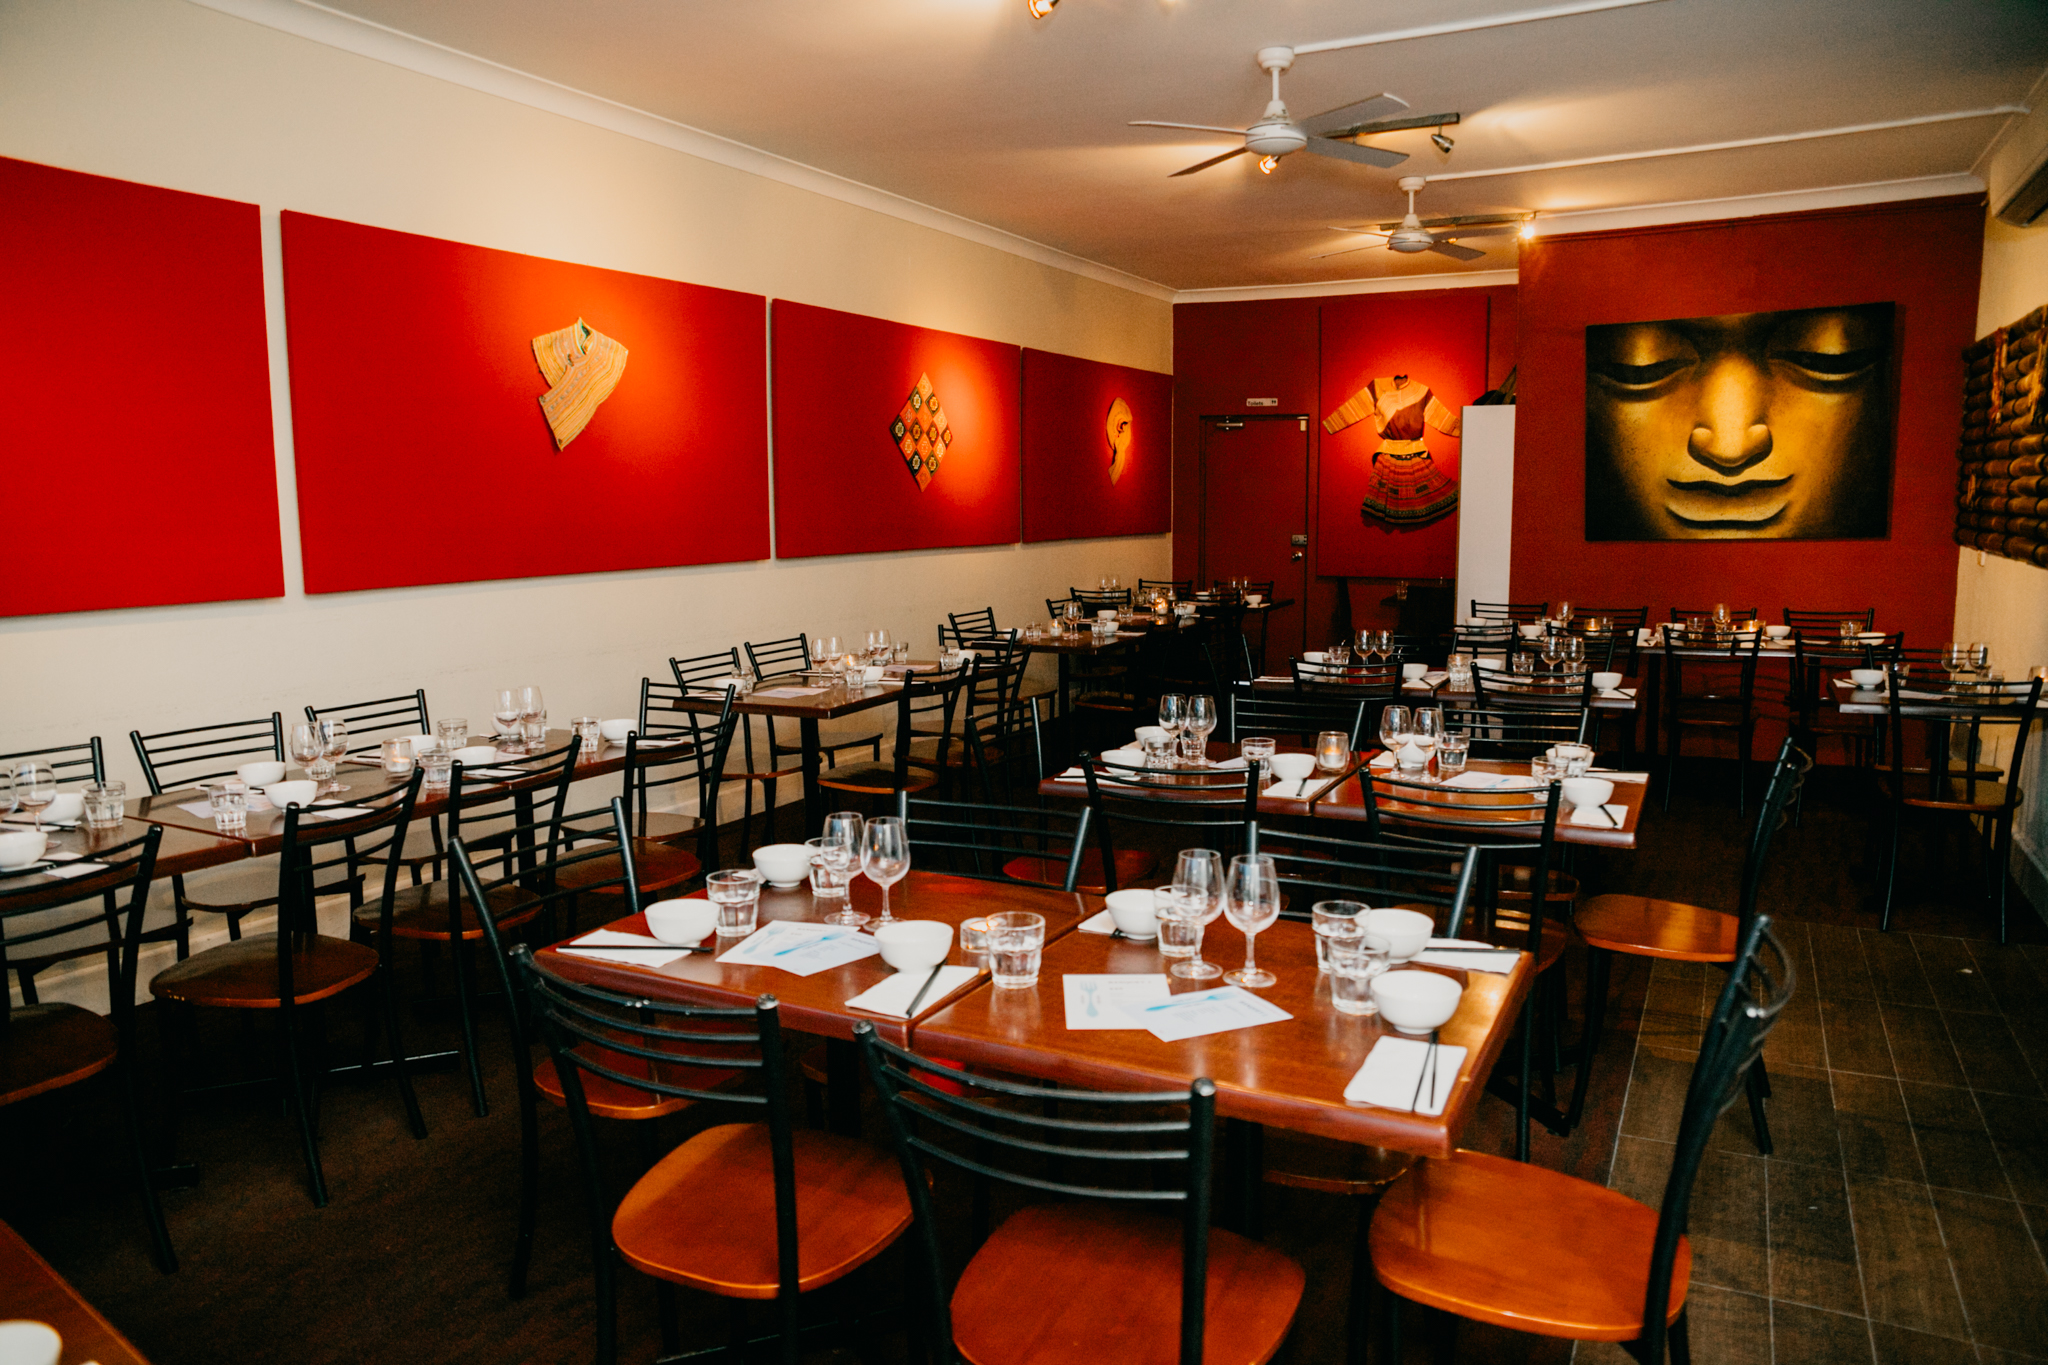 RESTAURANT FOR SALE TERRIGAL, WAMBERAL, CENTRAL COAST. PROFITABLE, ASIAN